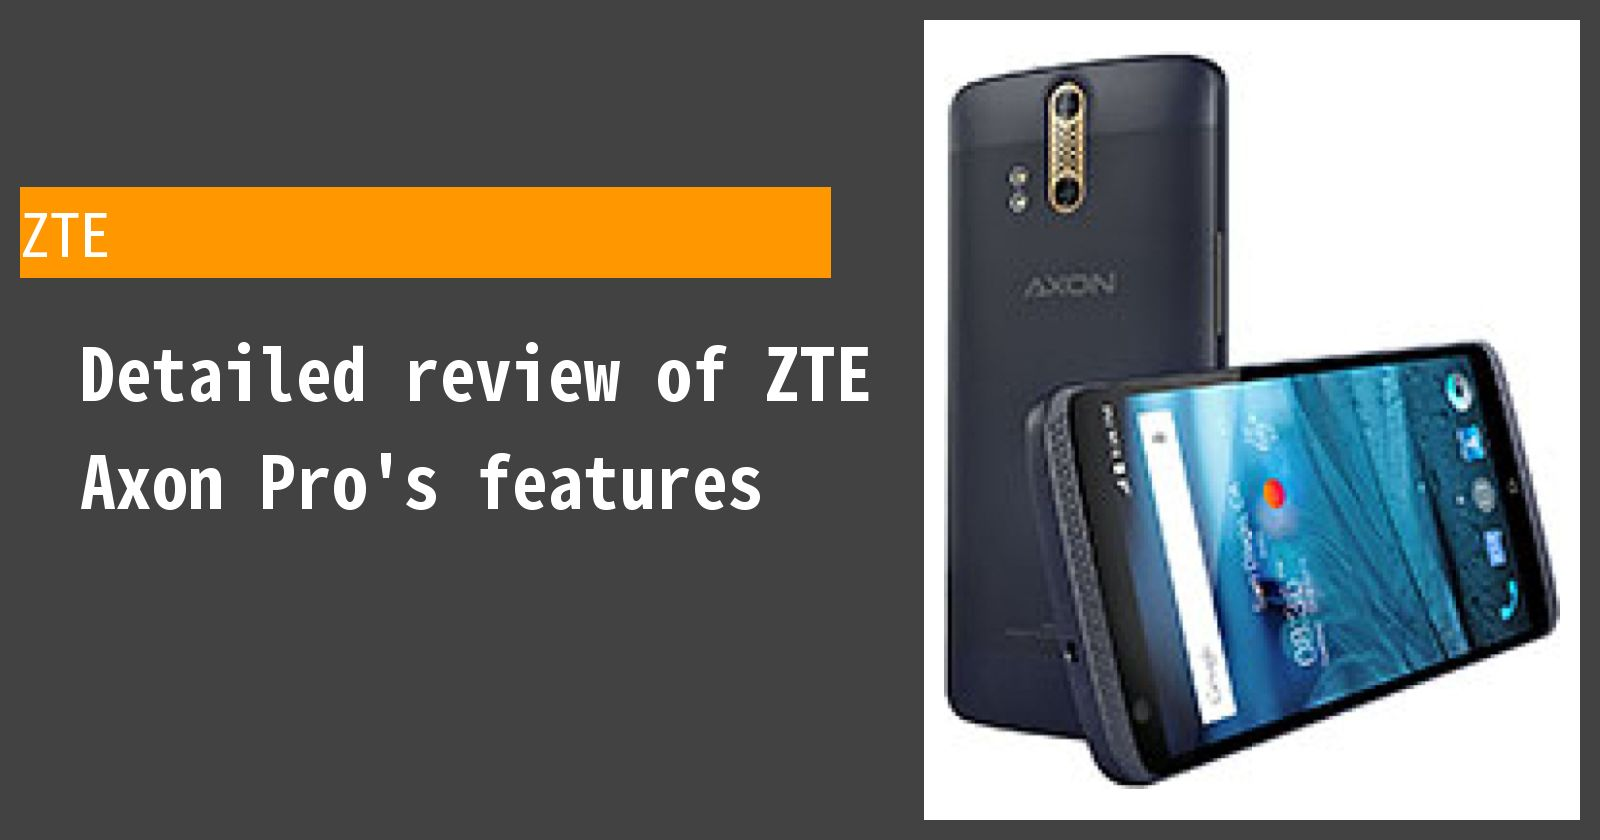 Detailed review of ZTE Axon Pro's features